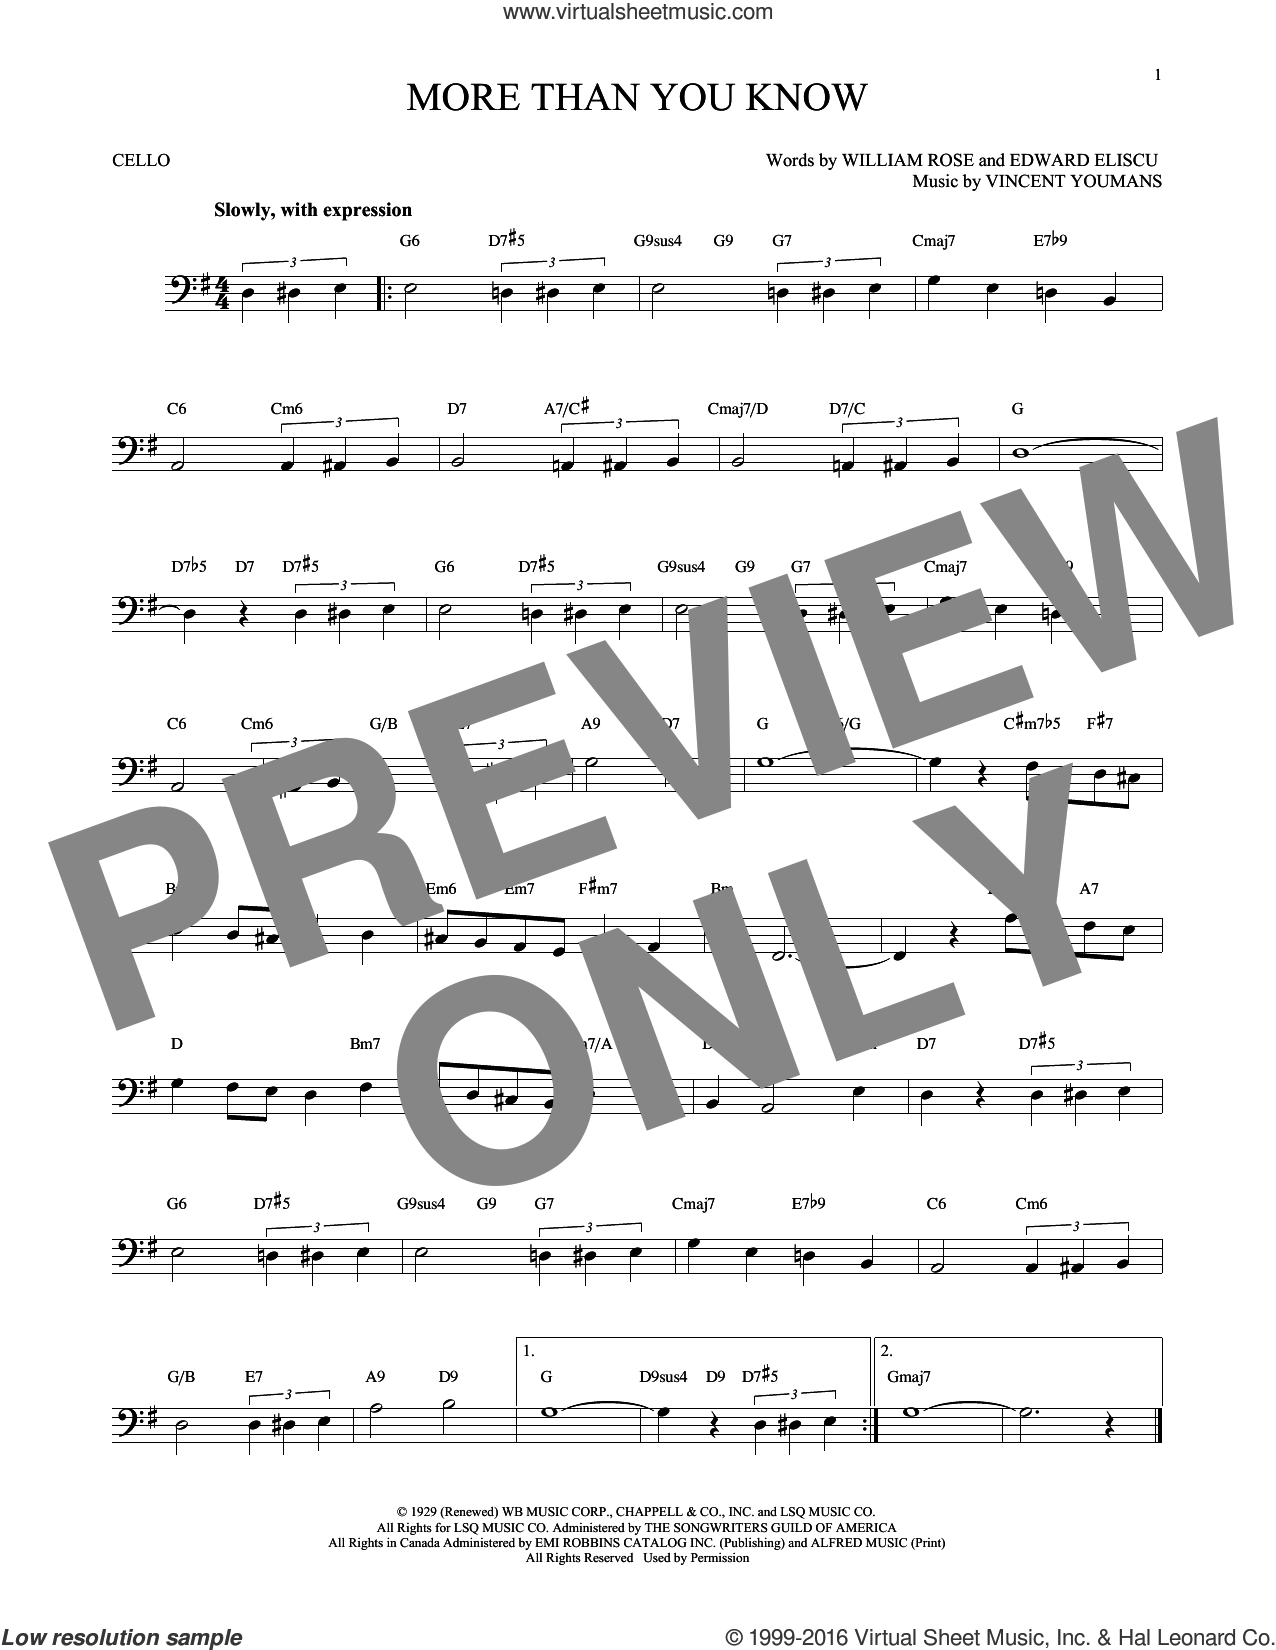 More Than You Know sheet music for cello solo by Vincent Youmans, Edward Eliscu and William Rose, intermediate skill level